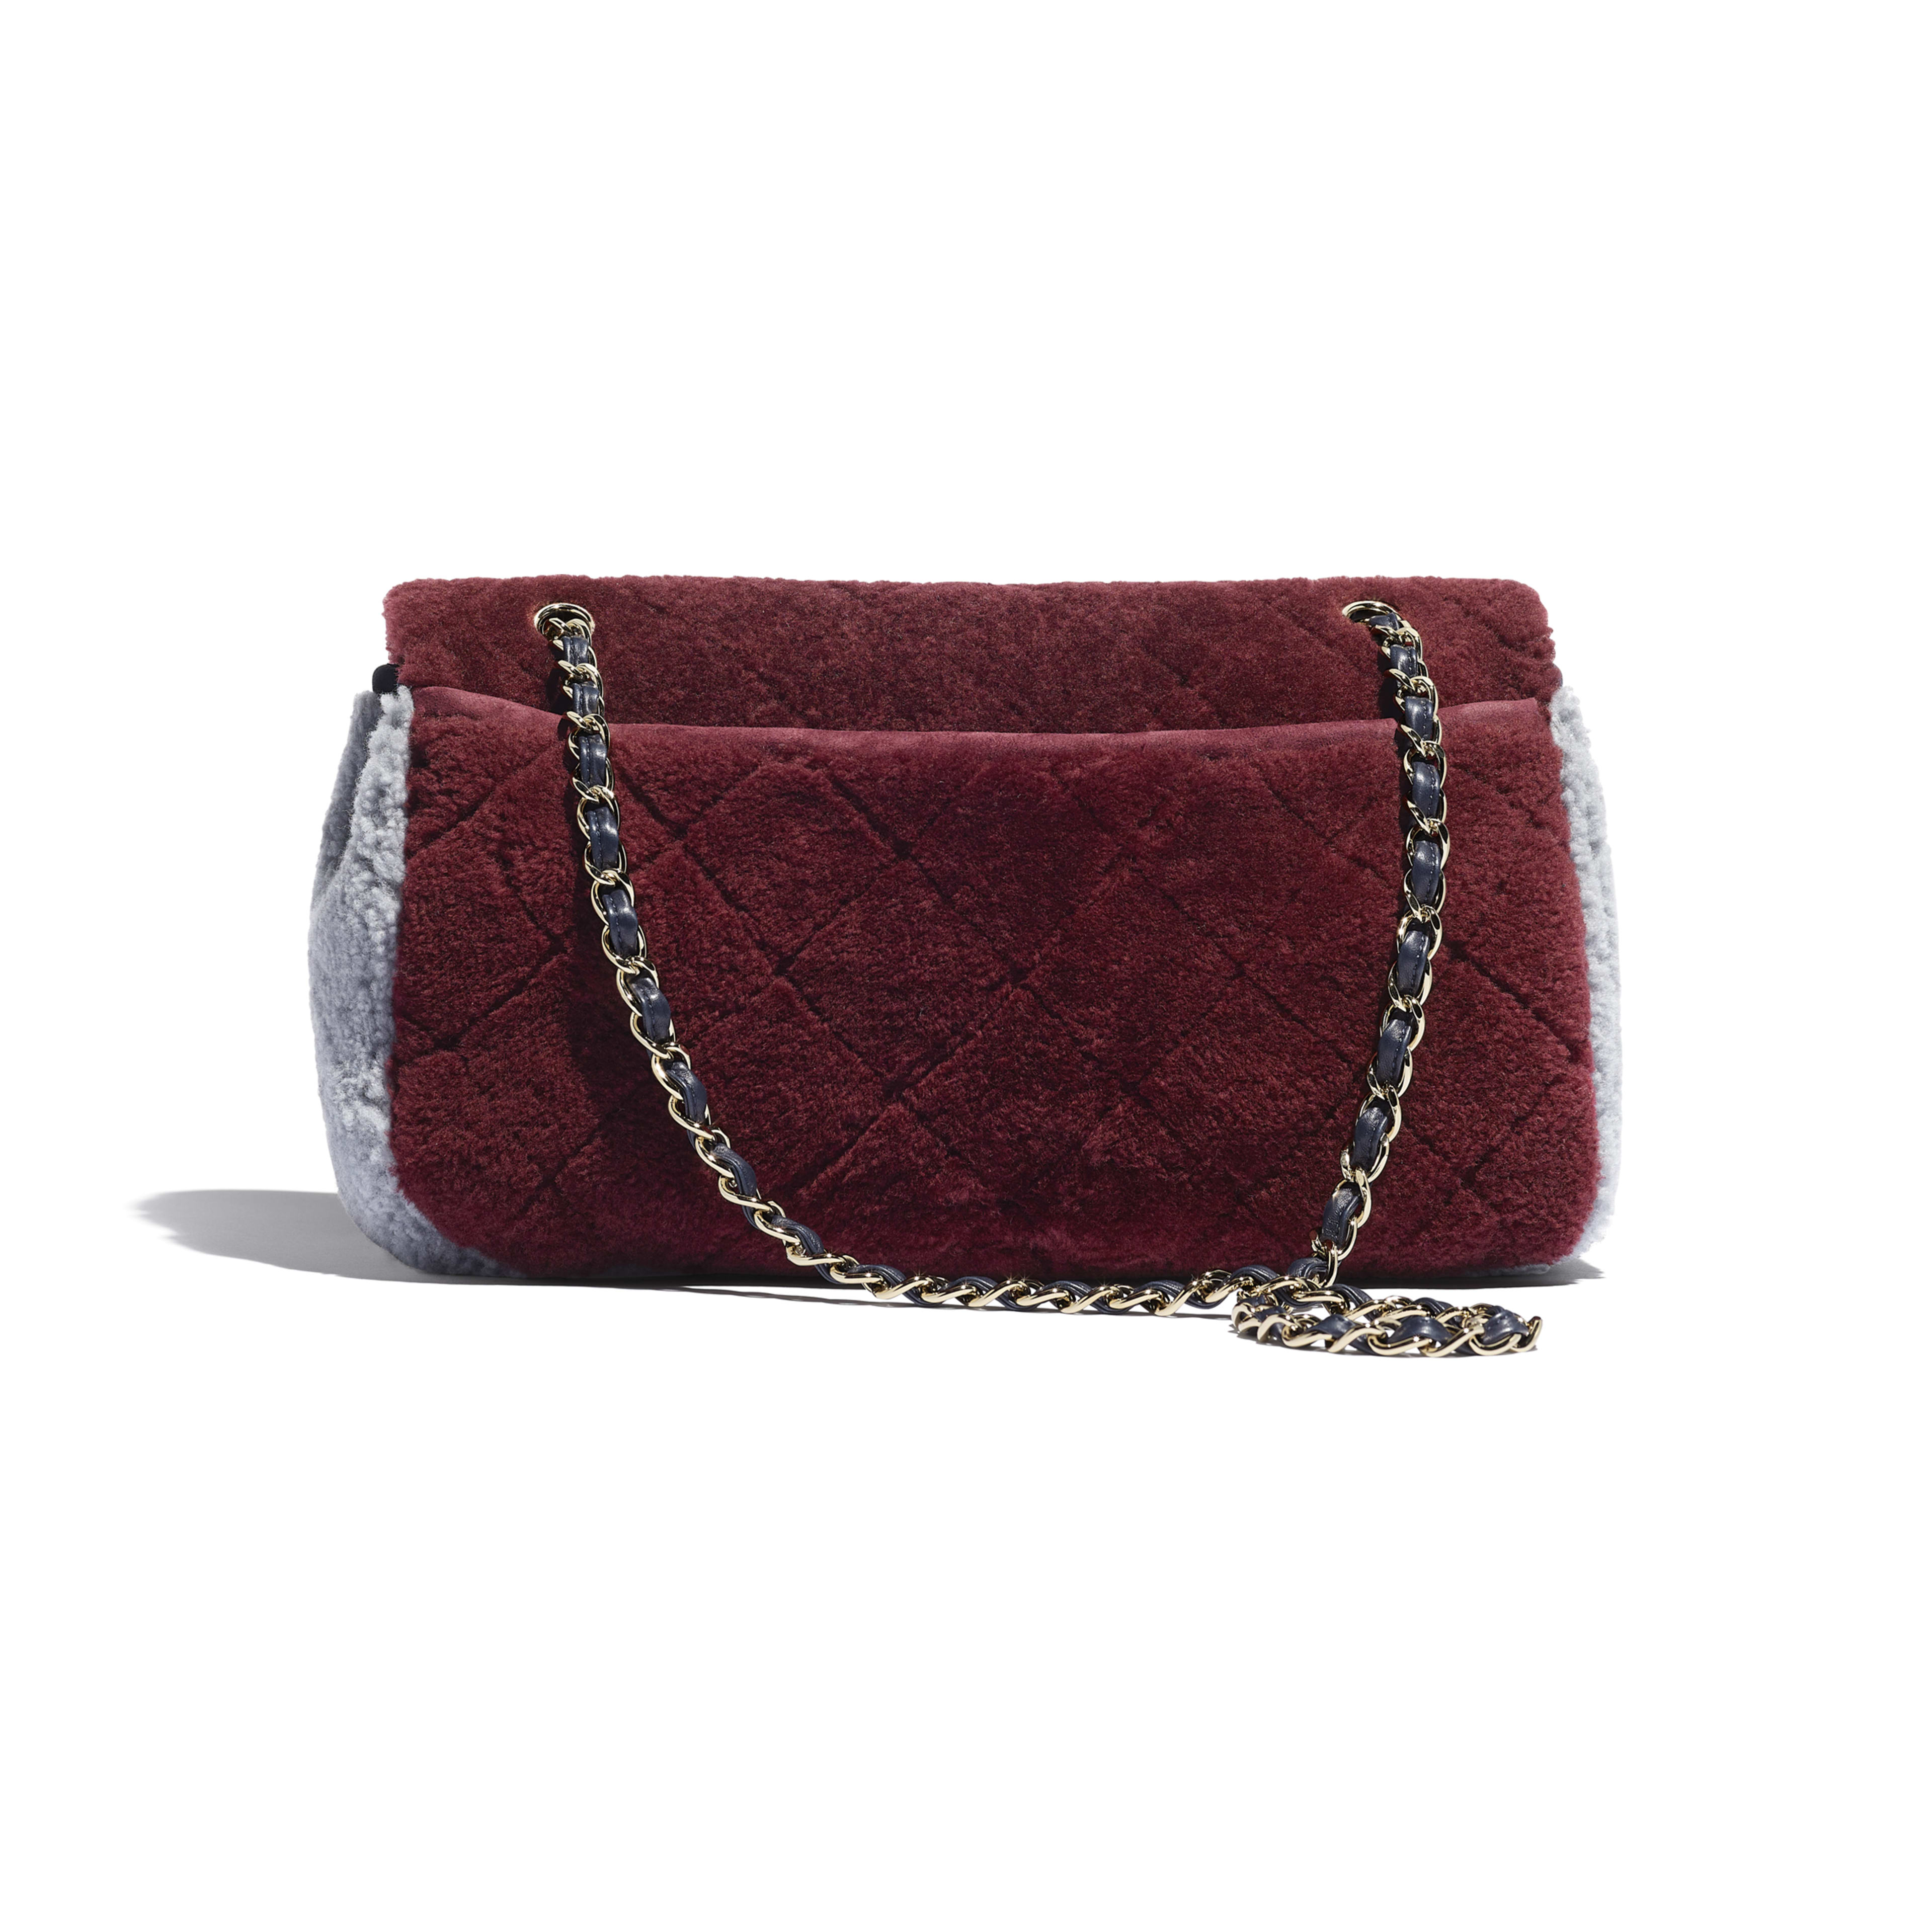 Flap Bag - Burgundy, Navy Blue & Gray - Shearling Sheepskin & Gold-Tone Metal - Alternative view - see full sized version